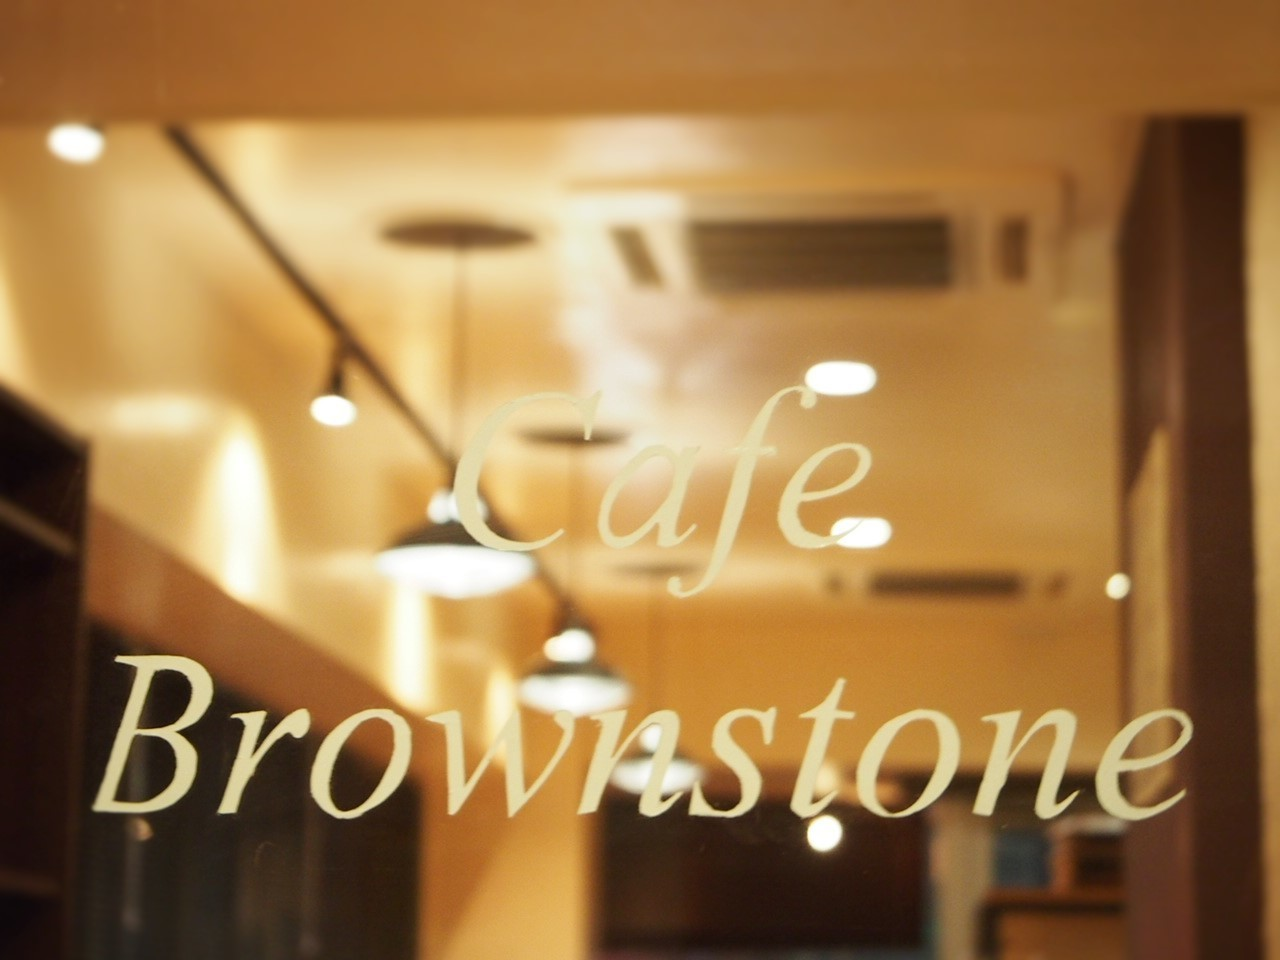 Cafe Brownstone(カフェ ブラウンストーン)